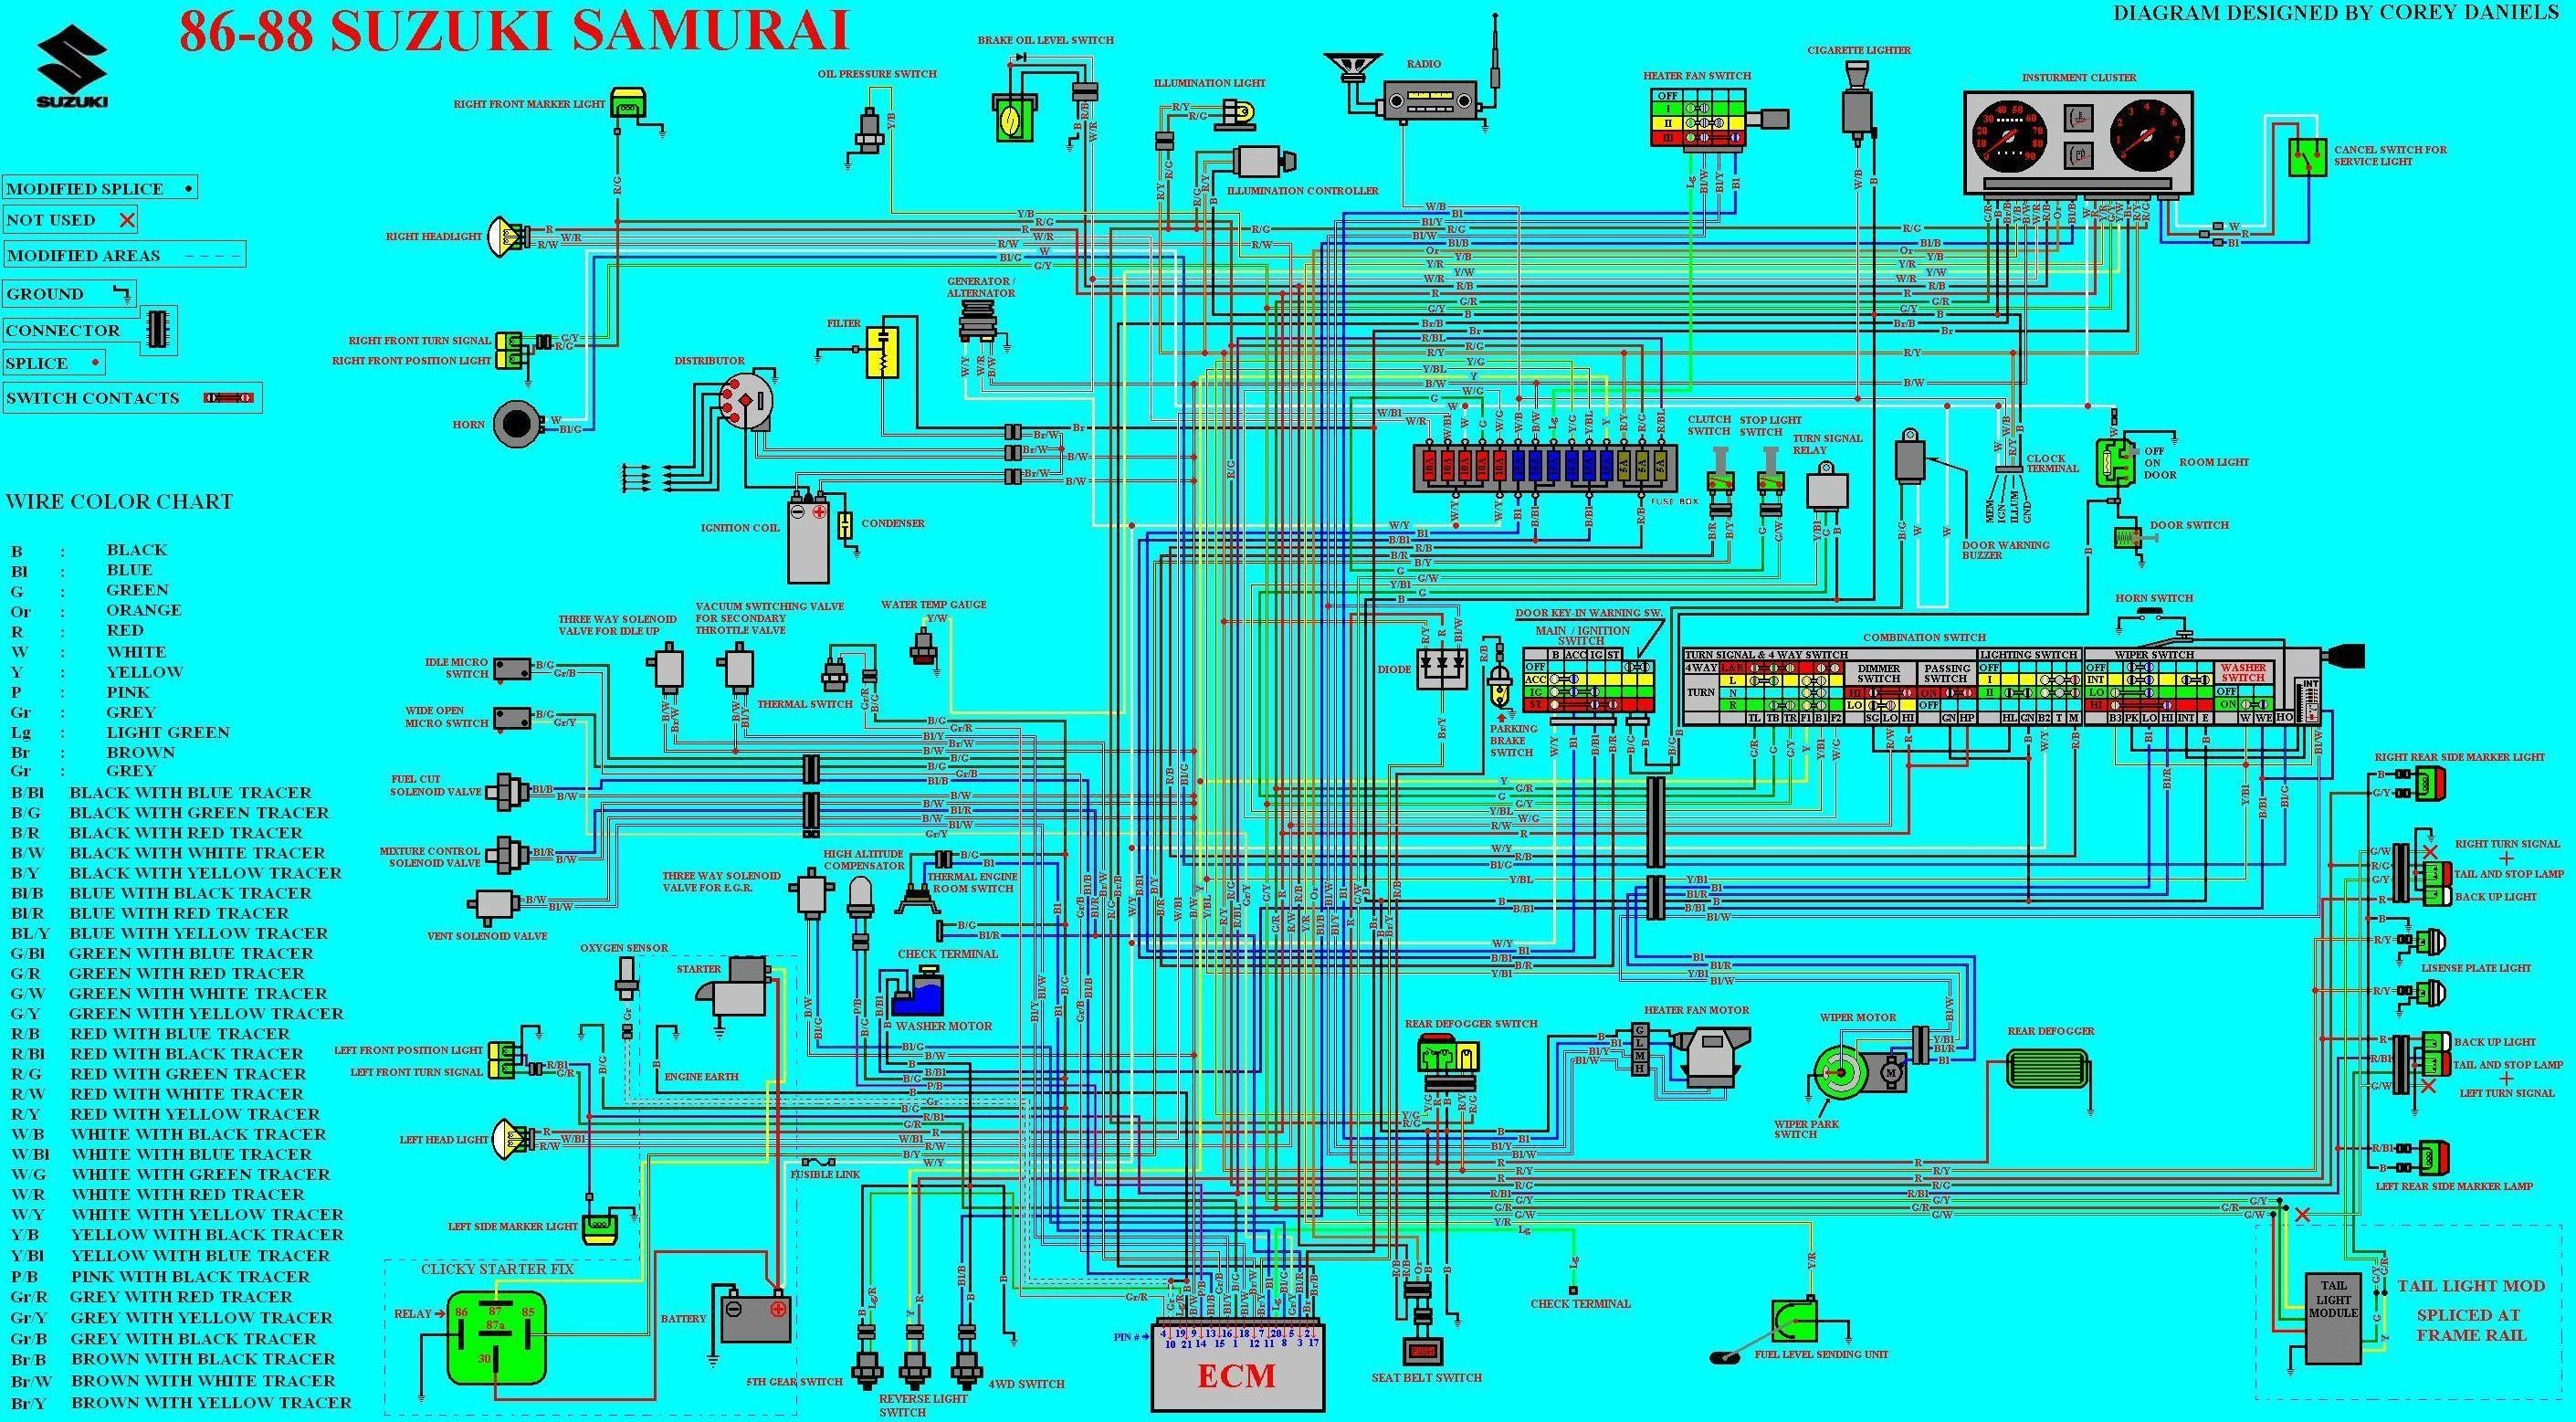 unique vn alternator wiring diagram diagrams digramssample diagramimages wiringdiagramsample wiringdiagram [ 2821 x 1557 Pixel ]